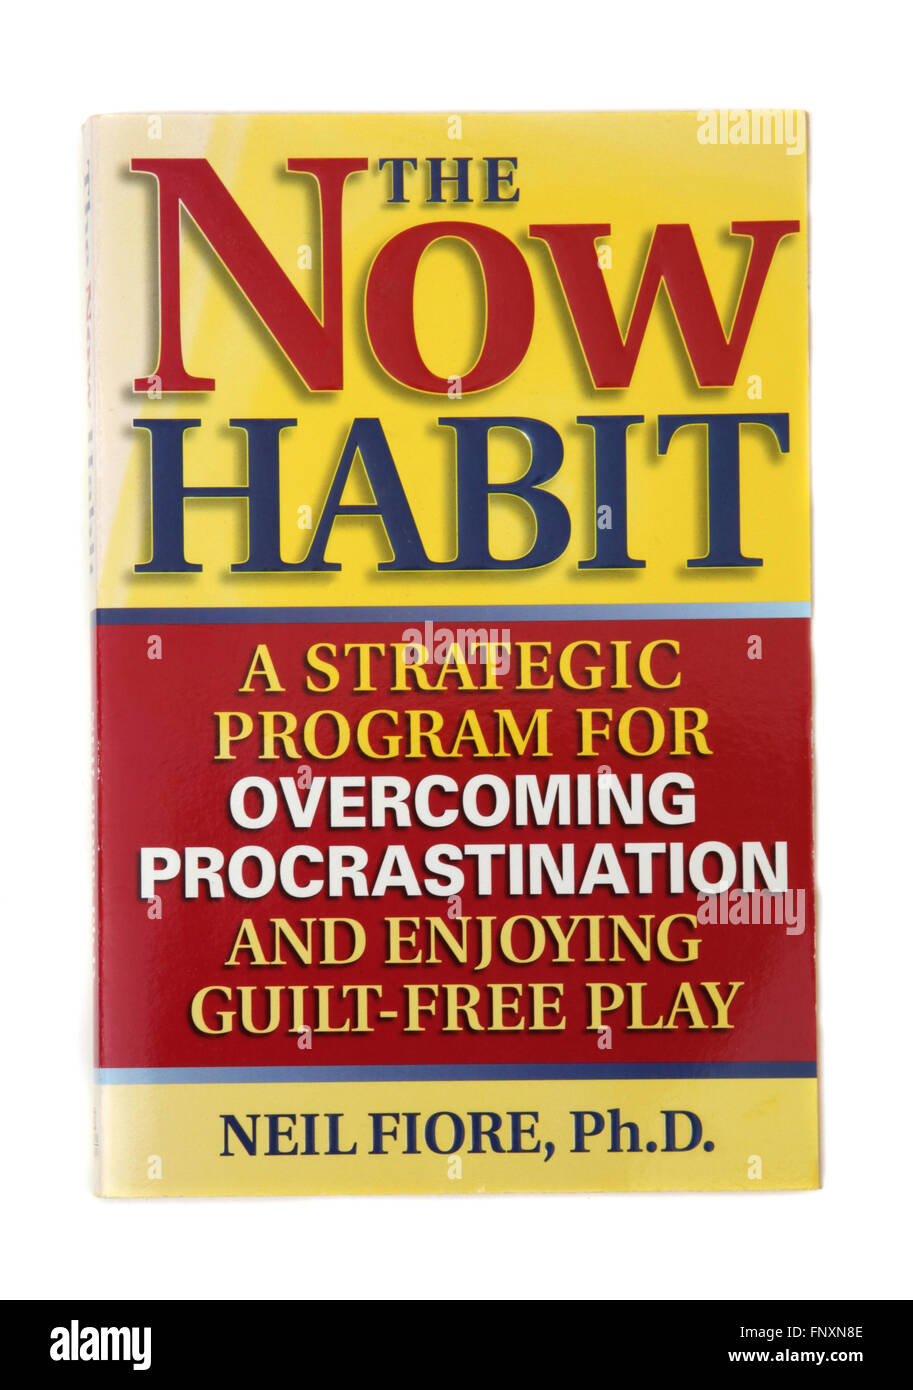 The book - The Now Habit by Neil Fiore - Stock Image